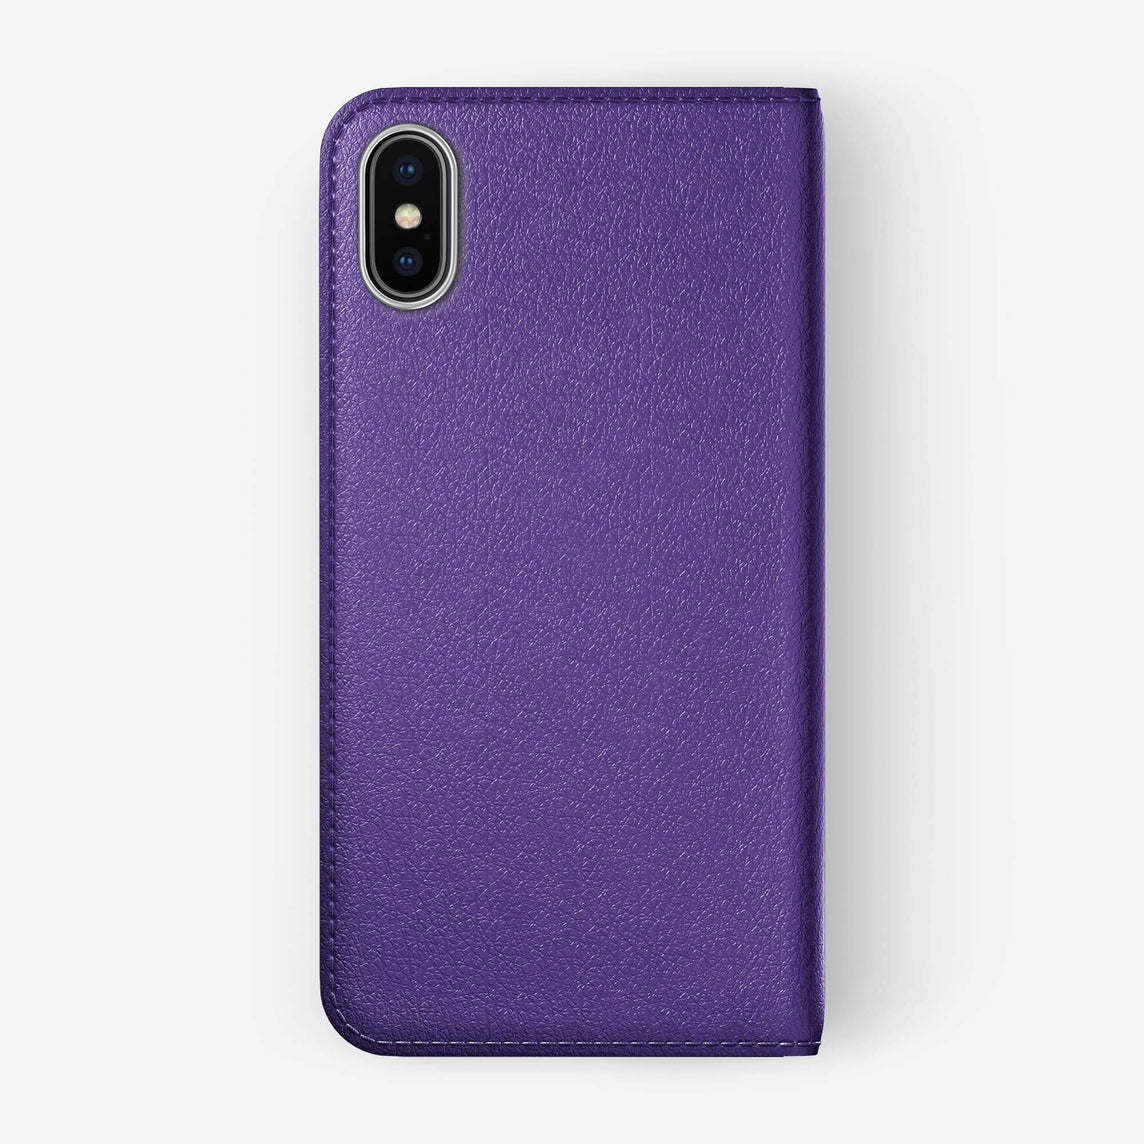 Violet Calfskin iPhone Folio Case for iPhone XS Max finishing stainless steel - Hadoro Luxury Cases -img5